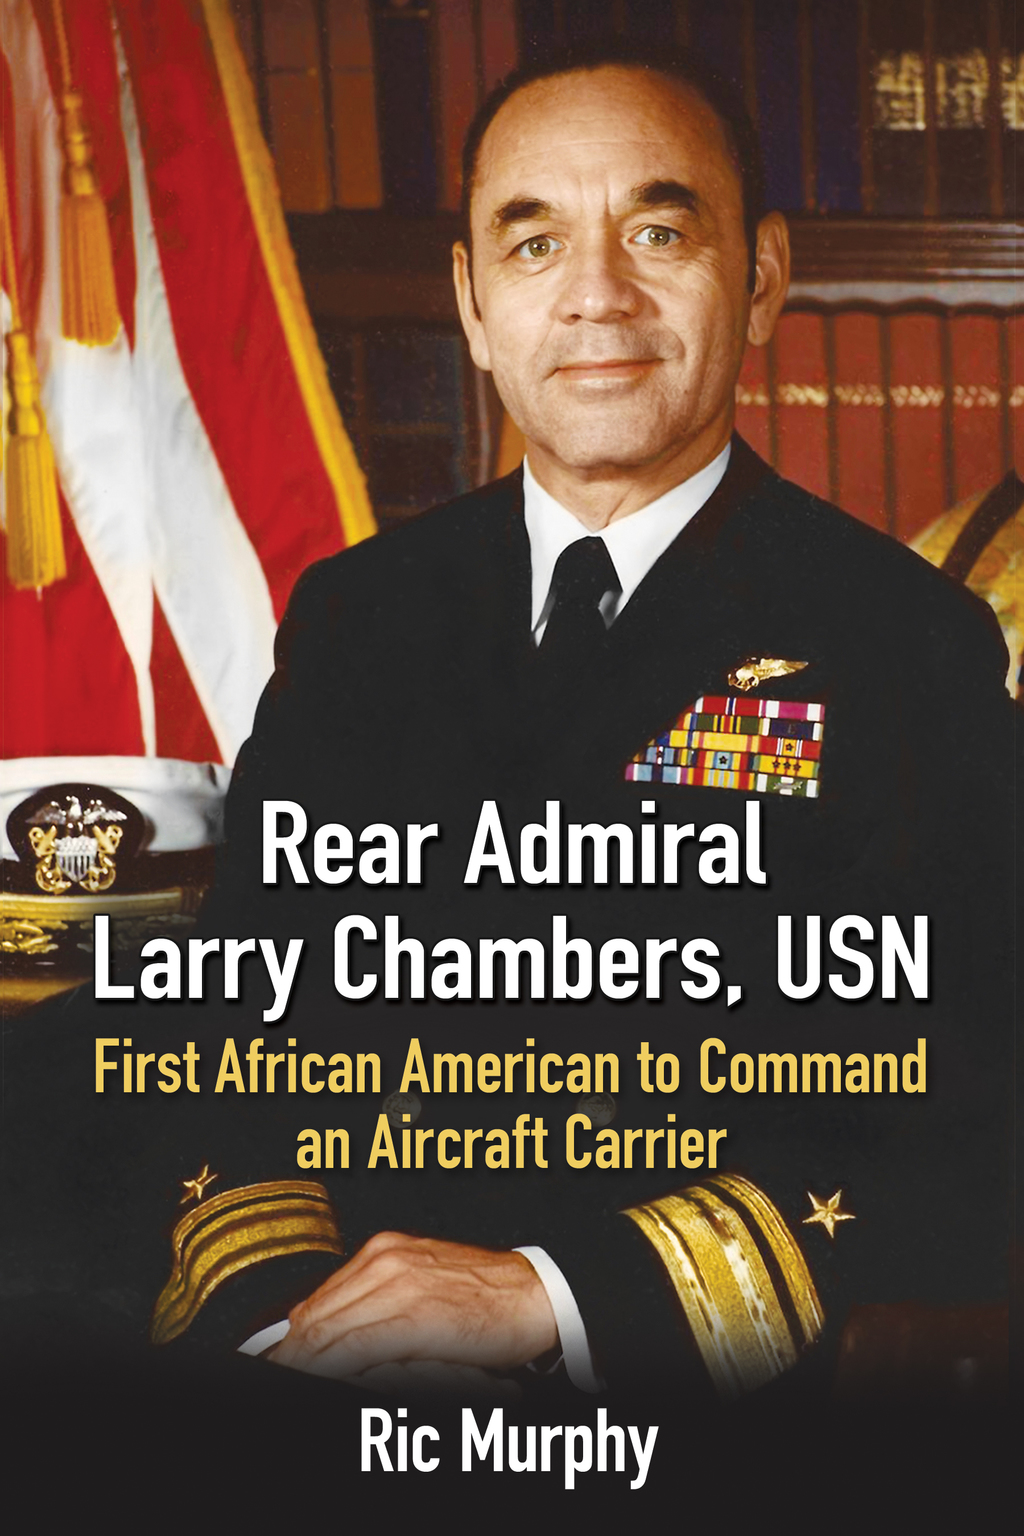 Rear Admiral Larry Chambers  USN: First African American to Command an Aircraft Carrier (eBook)